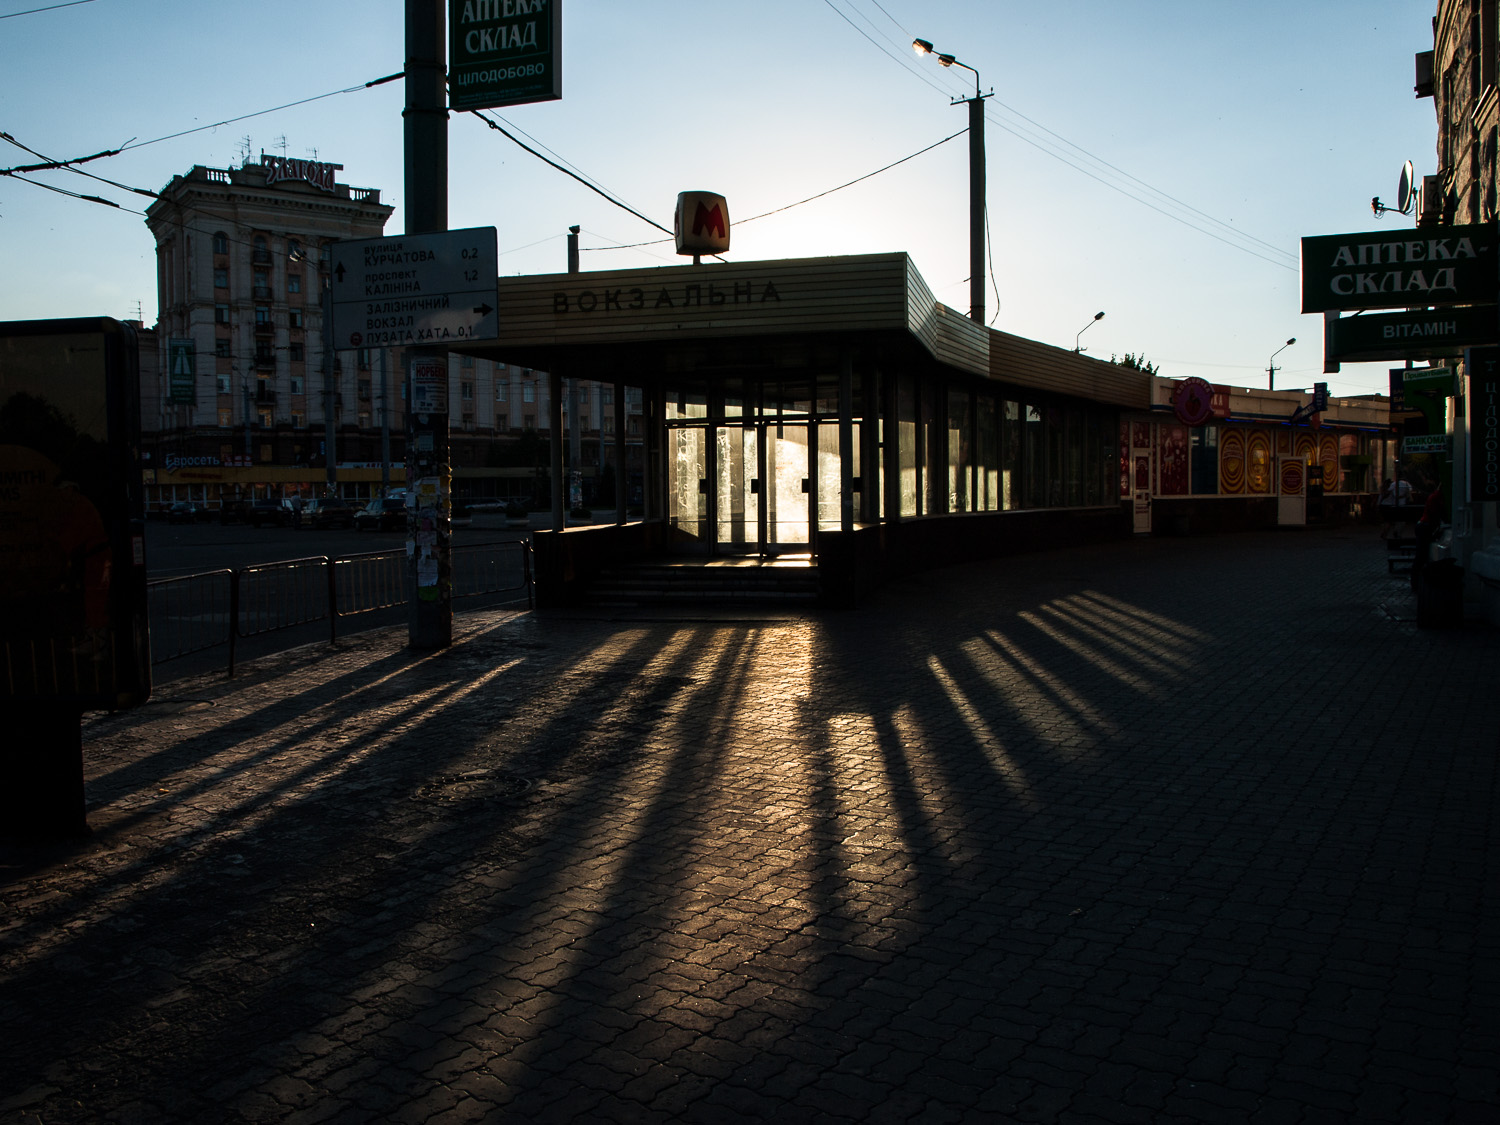 The entrance to a metro station in the city of Dnipropetrovsk.